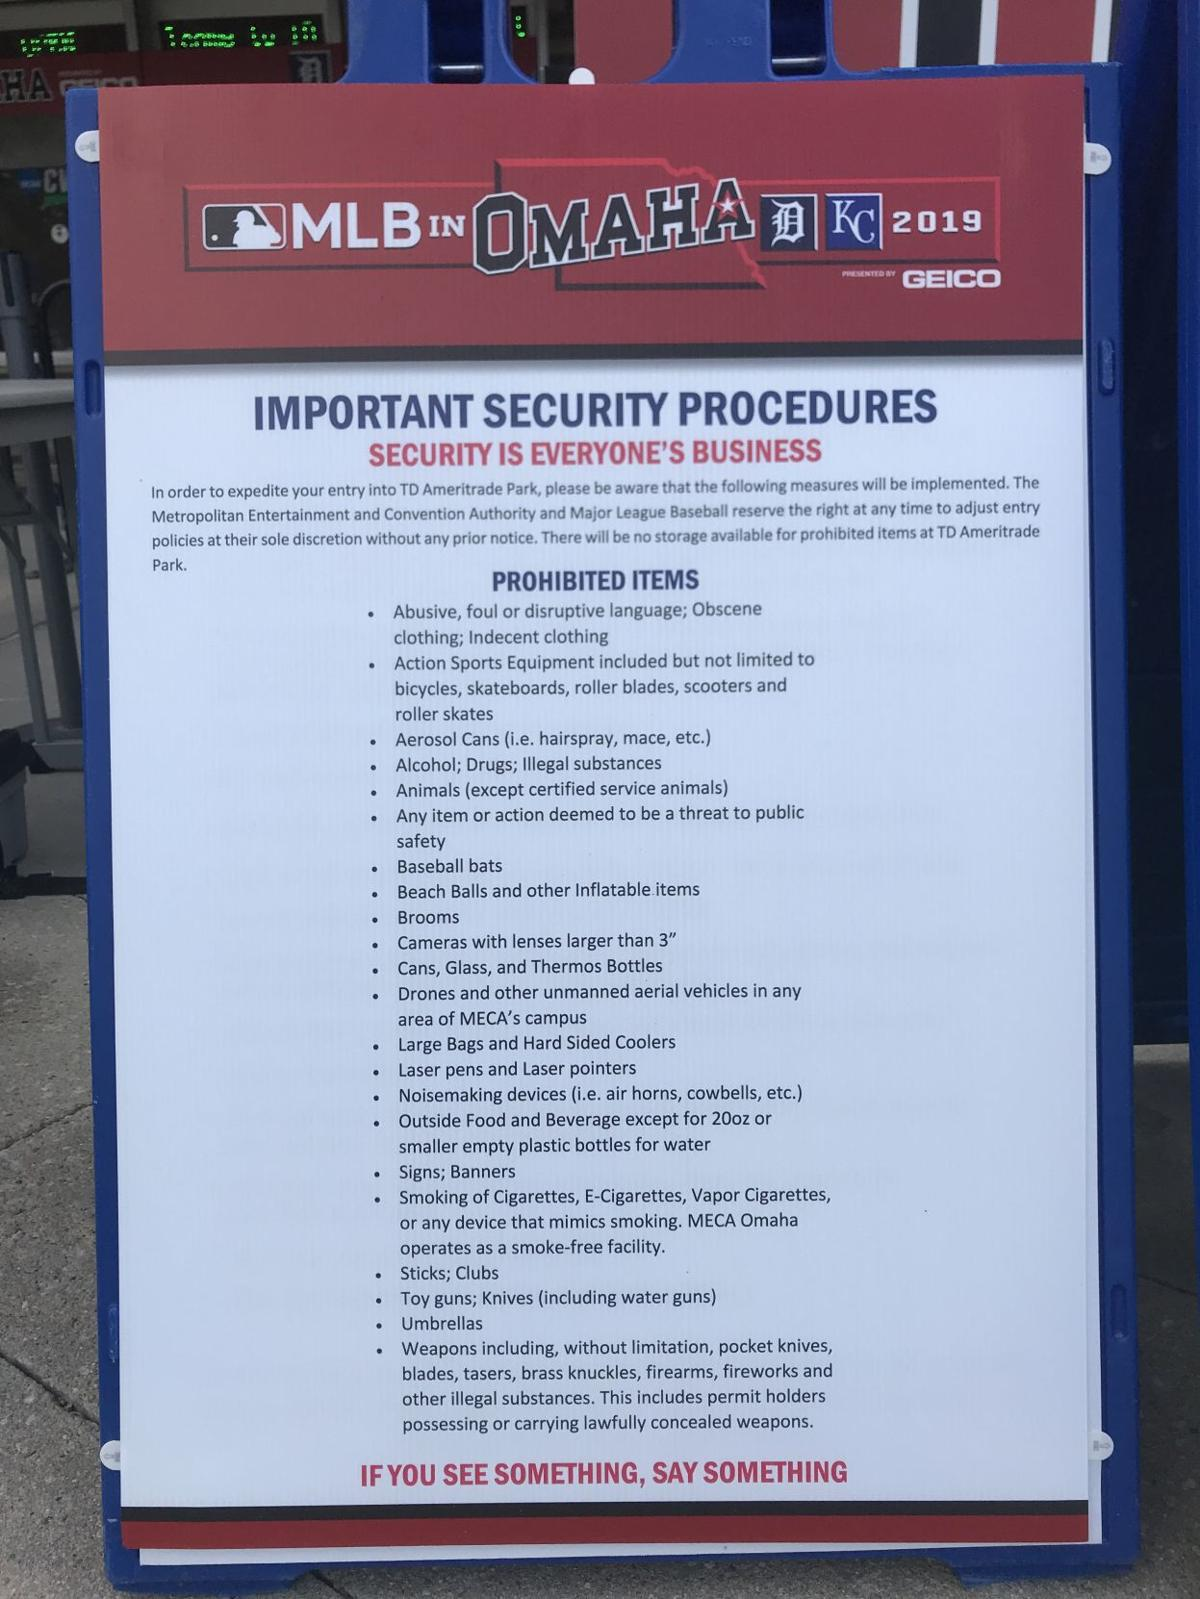 20190613_spo_mlbsecurity1